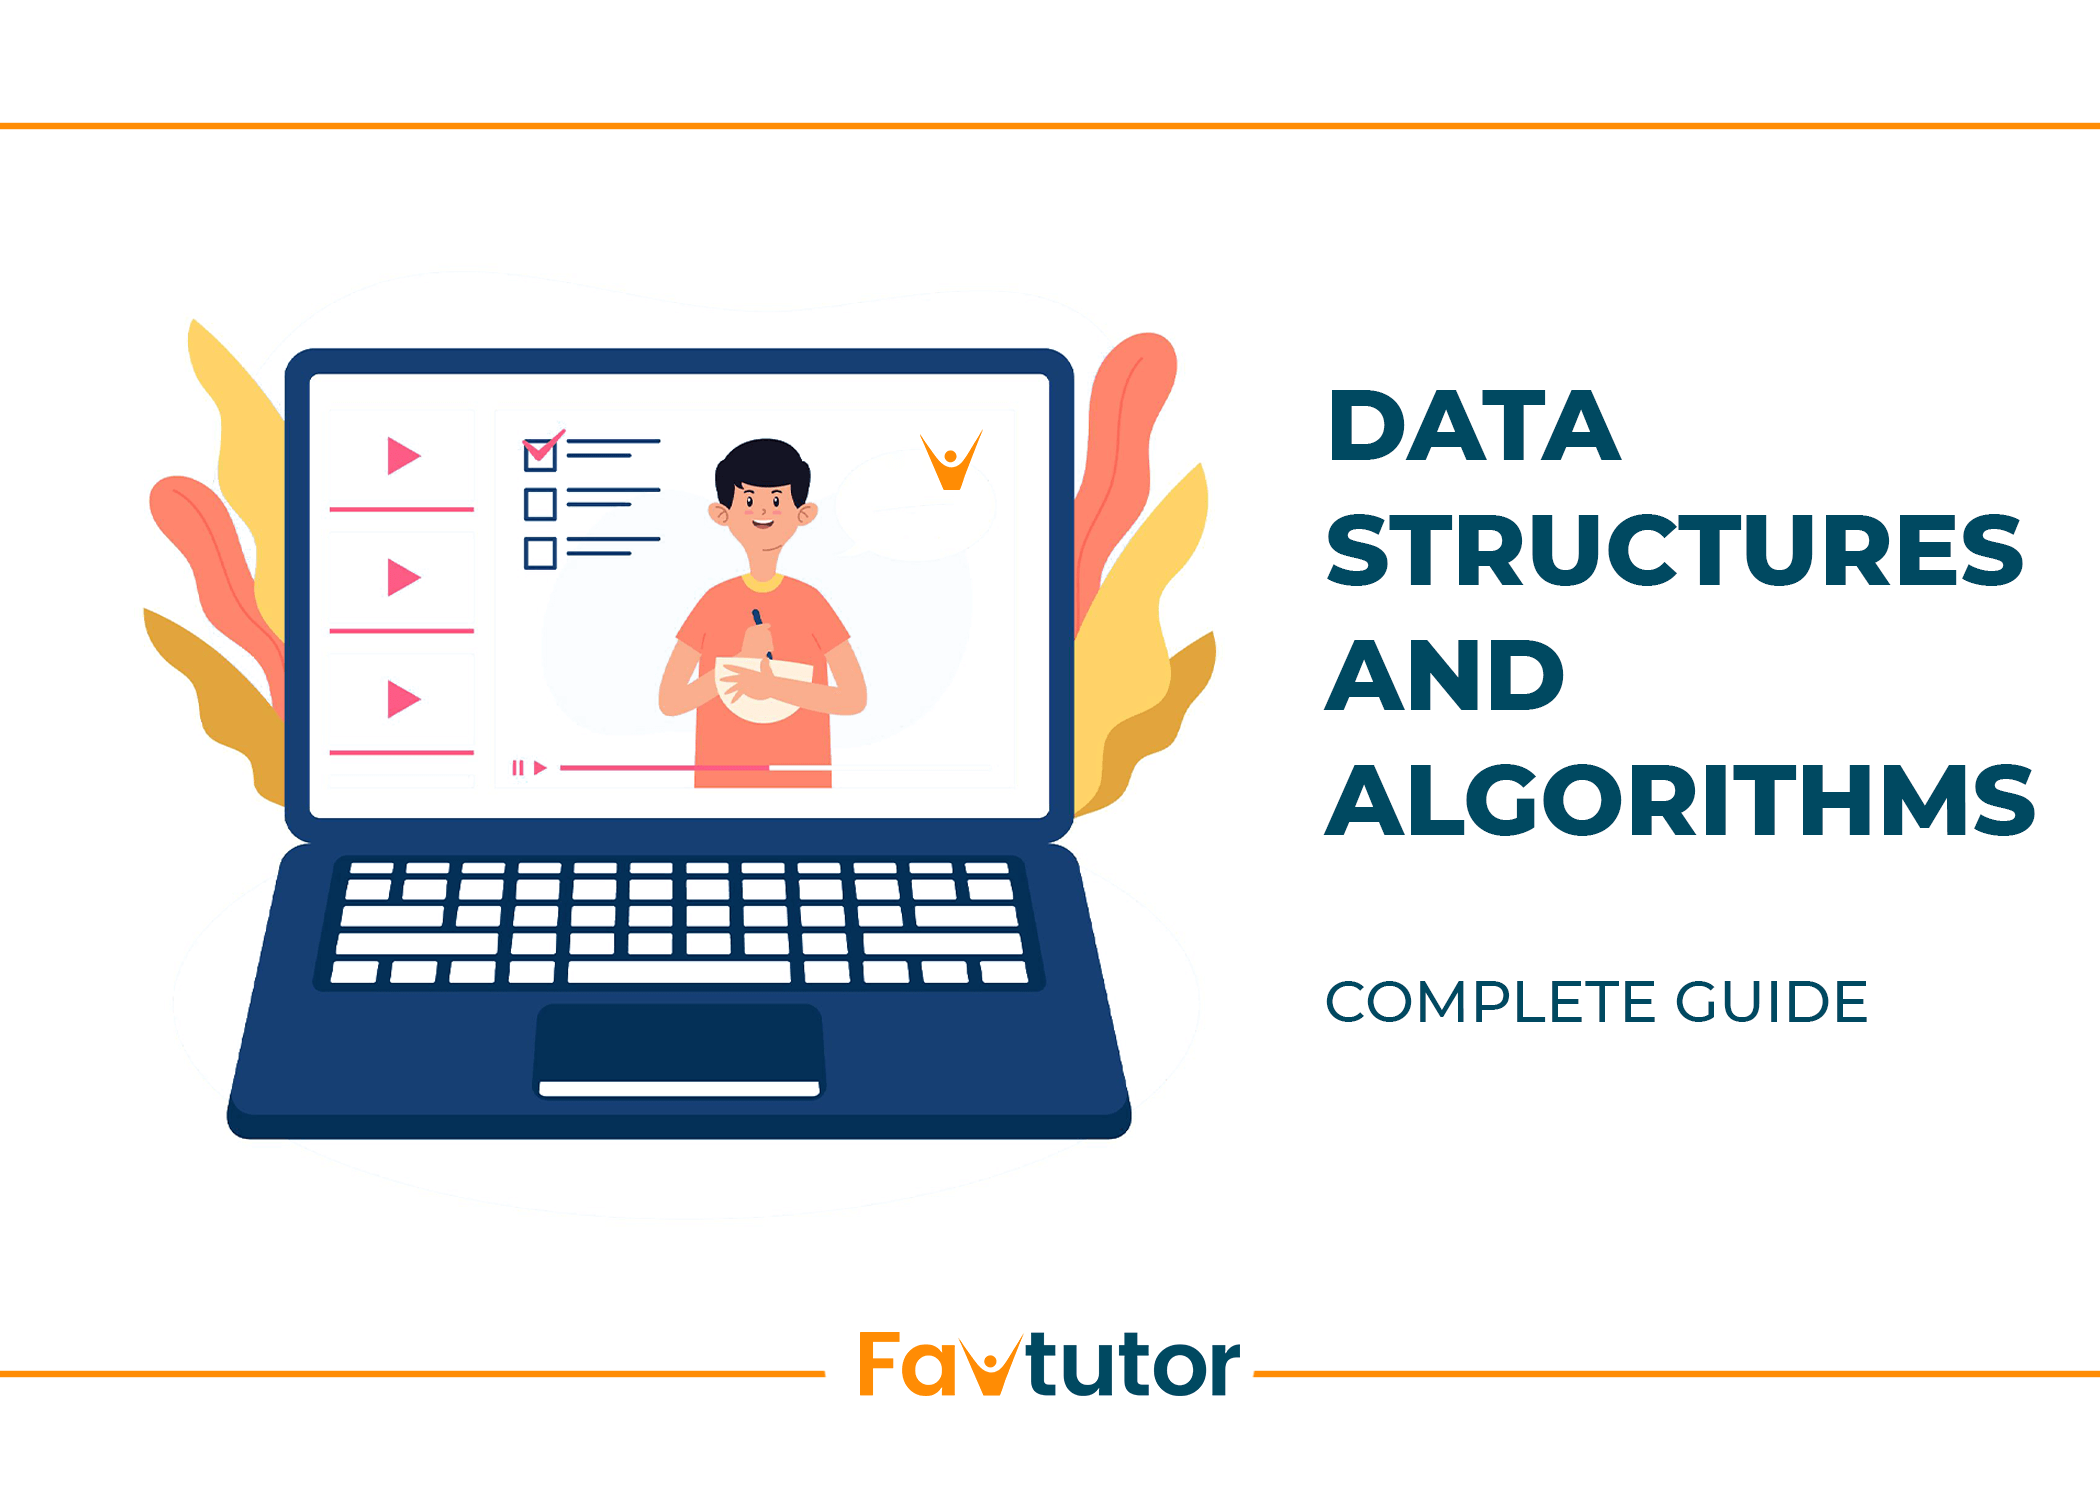 [Guide] Data Structure and Algorithms in 2021 (for Beginners)